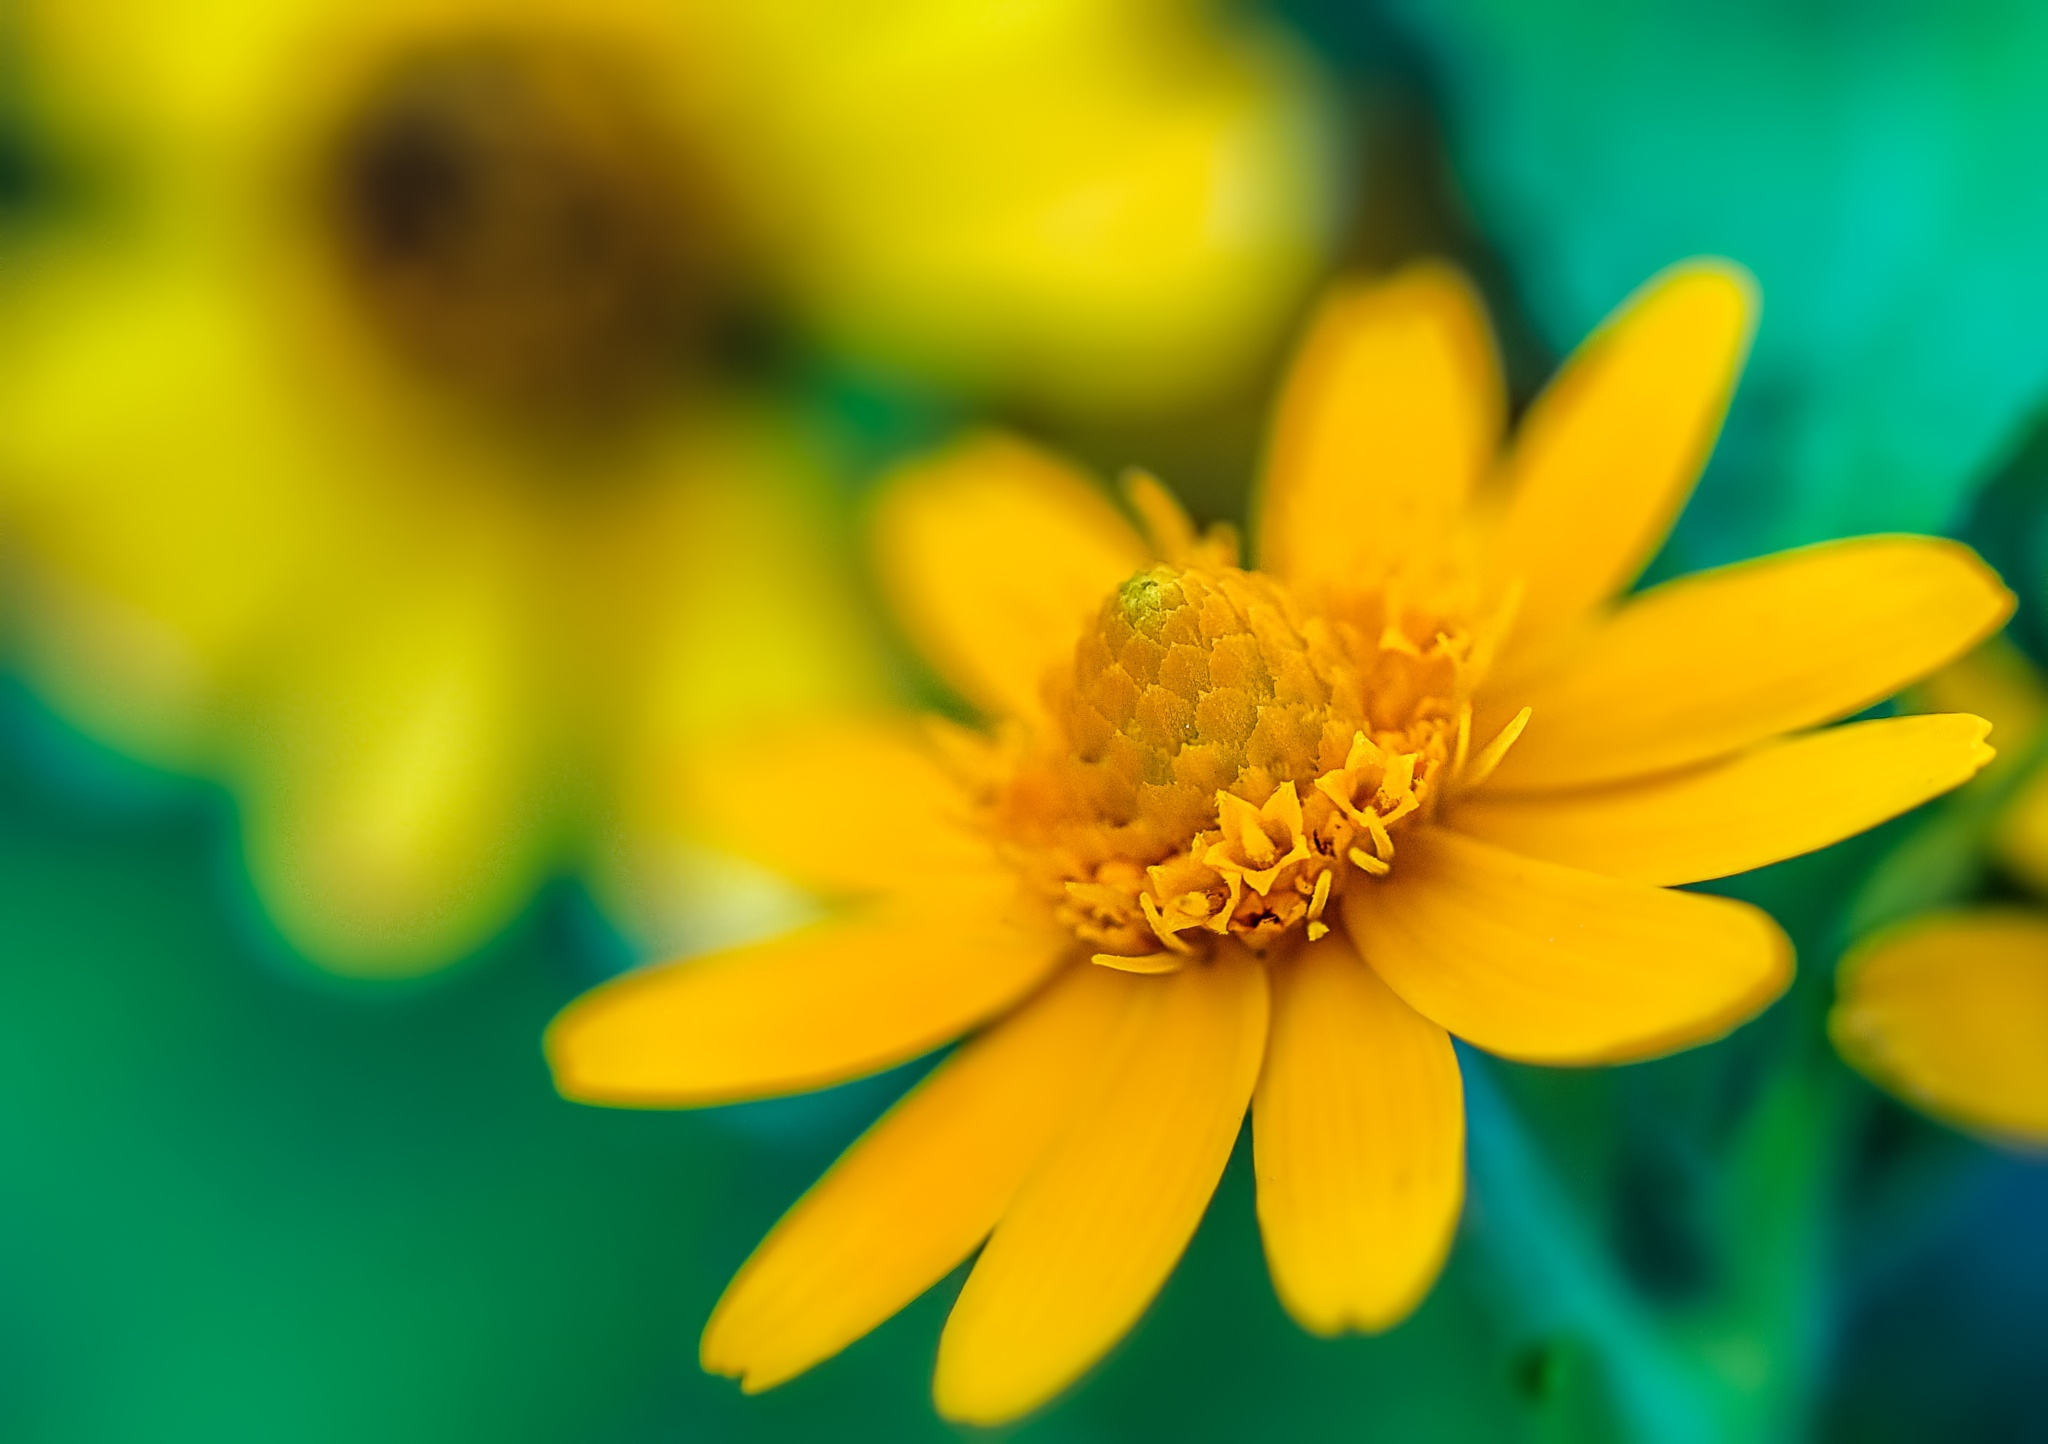 Yellow Flower by Kok Tien Sang